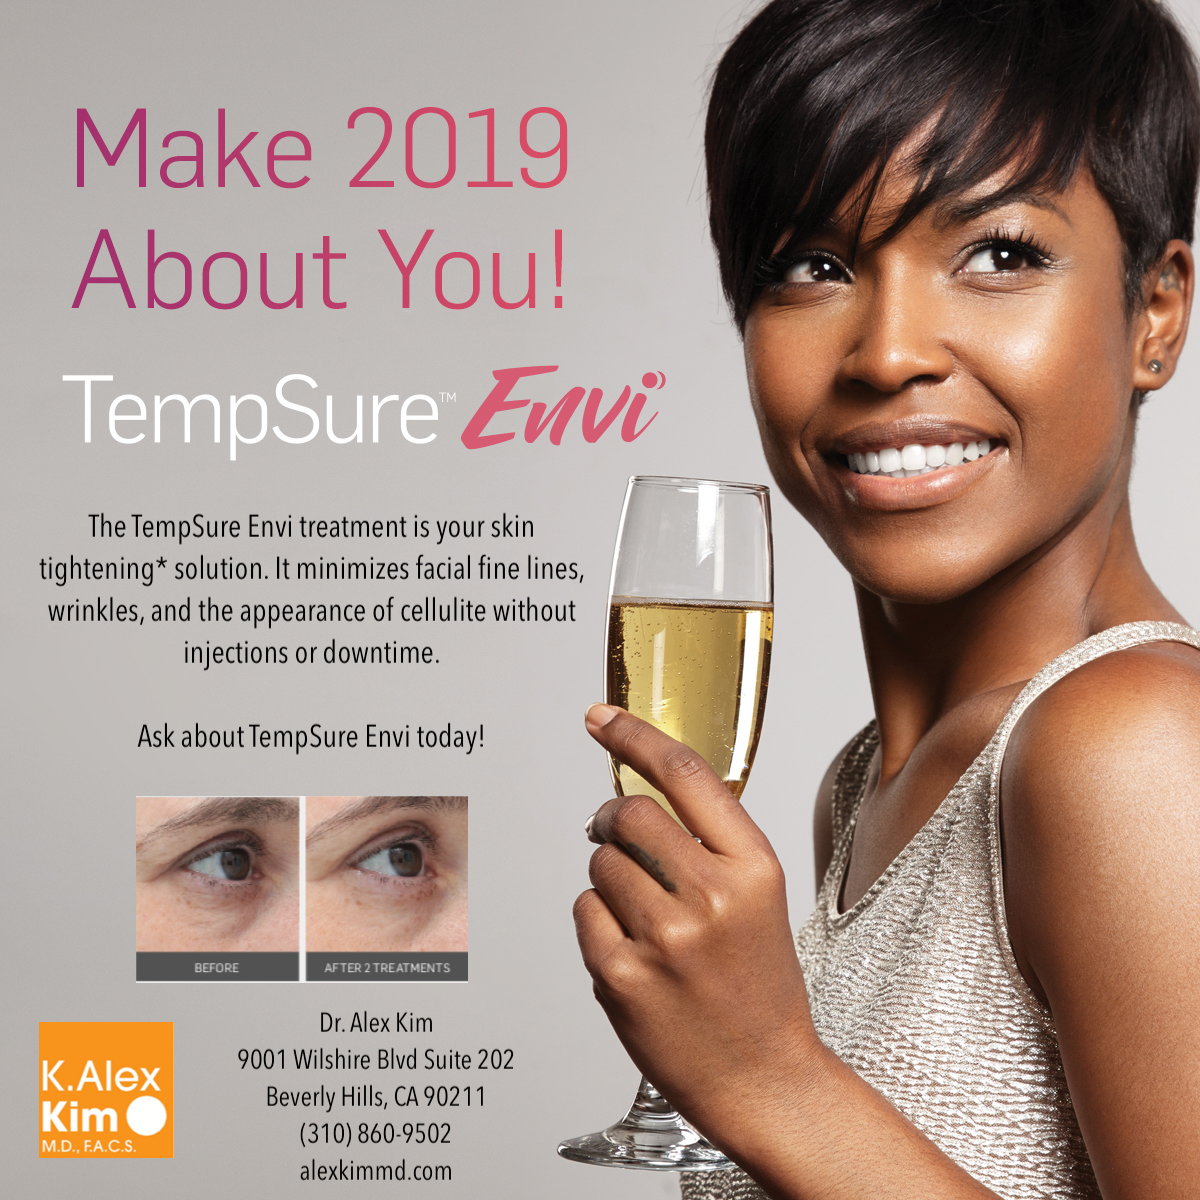 TempSure-Envi-New-Years-Promotion--Social-Media-Image